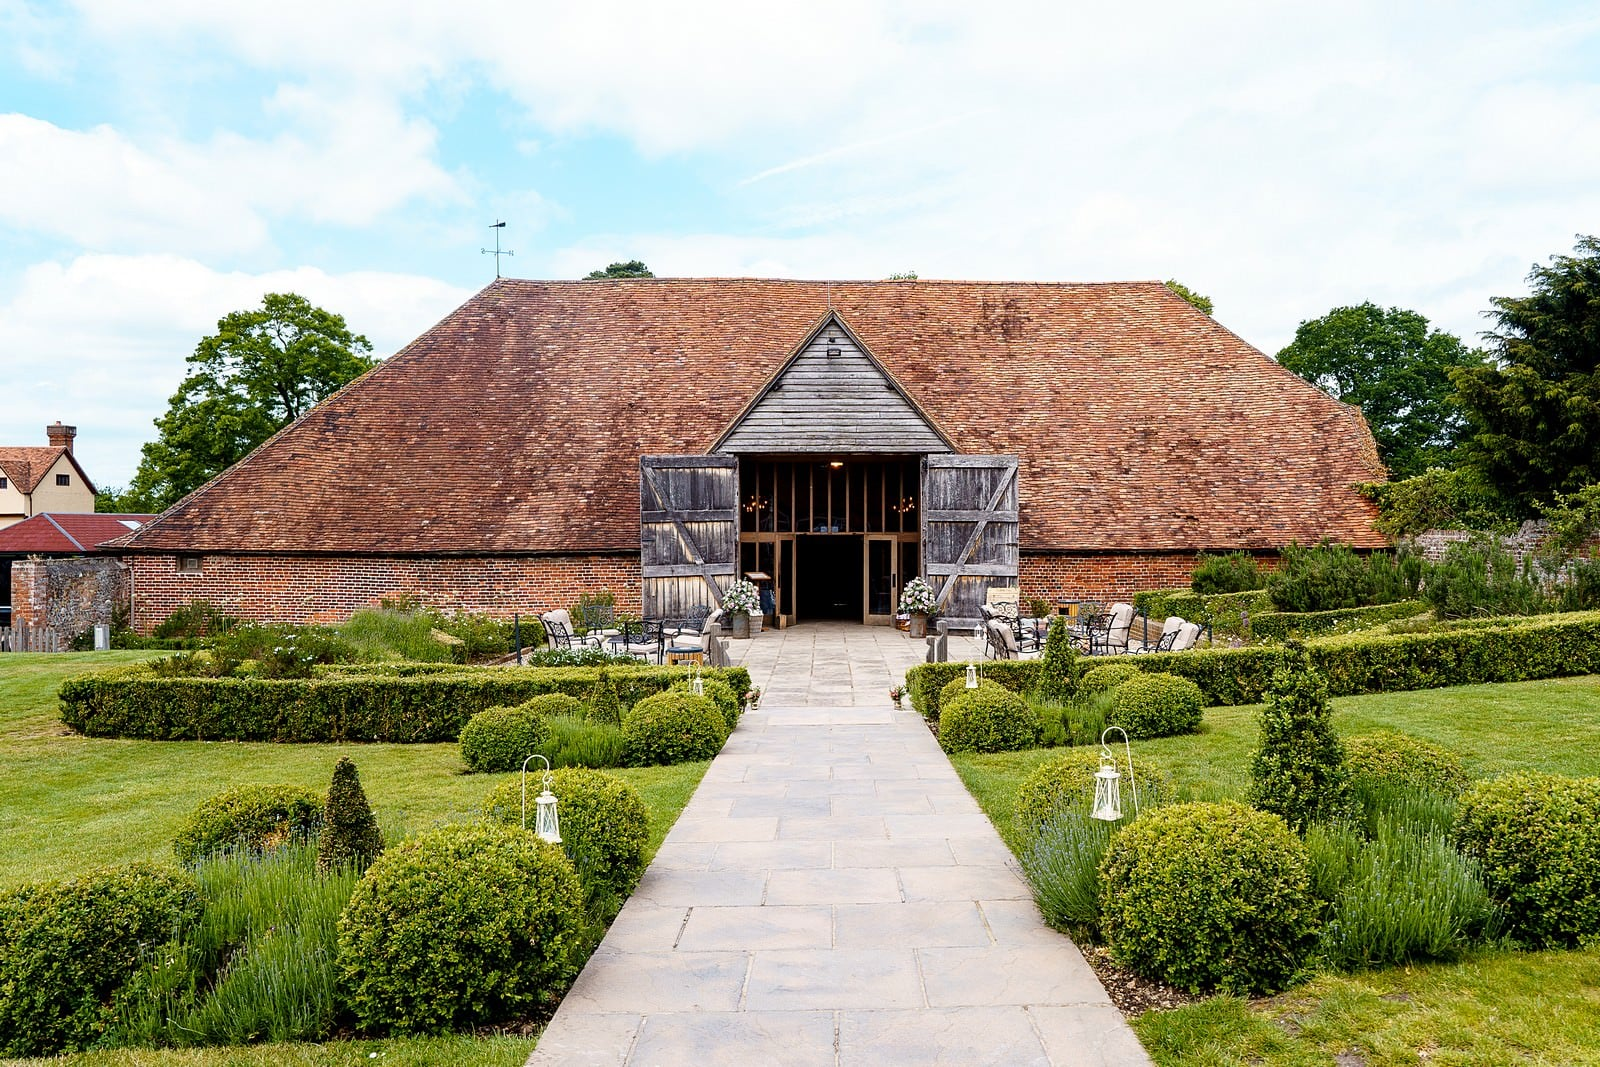 ufton barn wedding venue 1